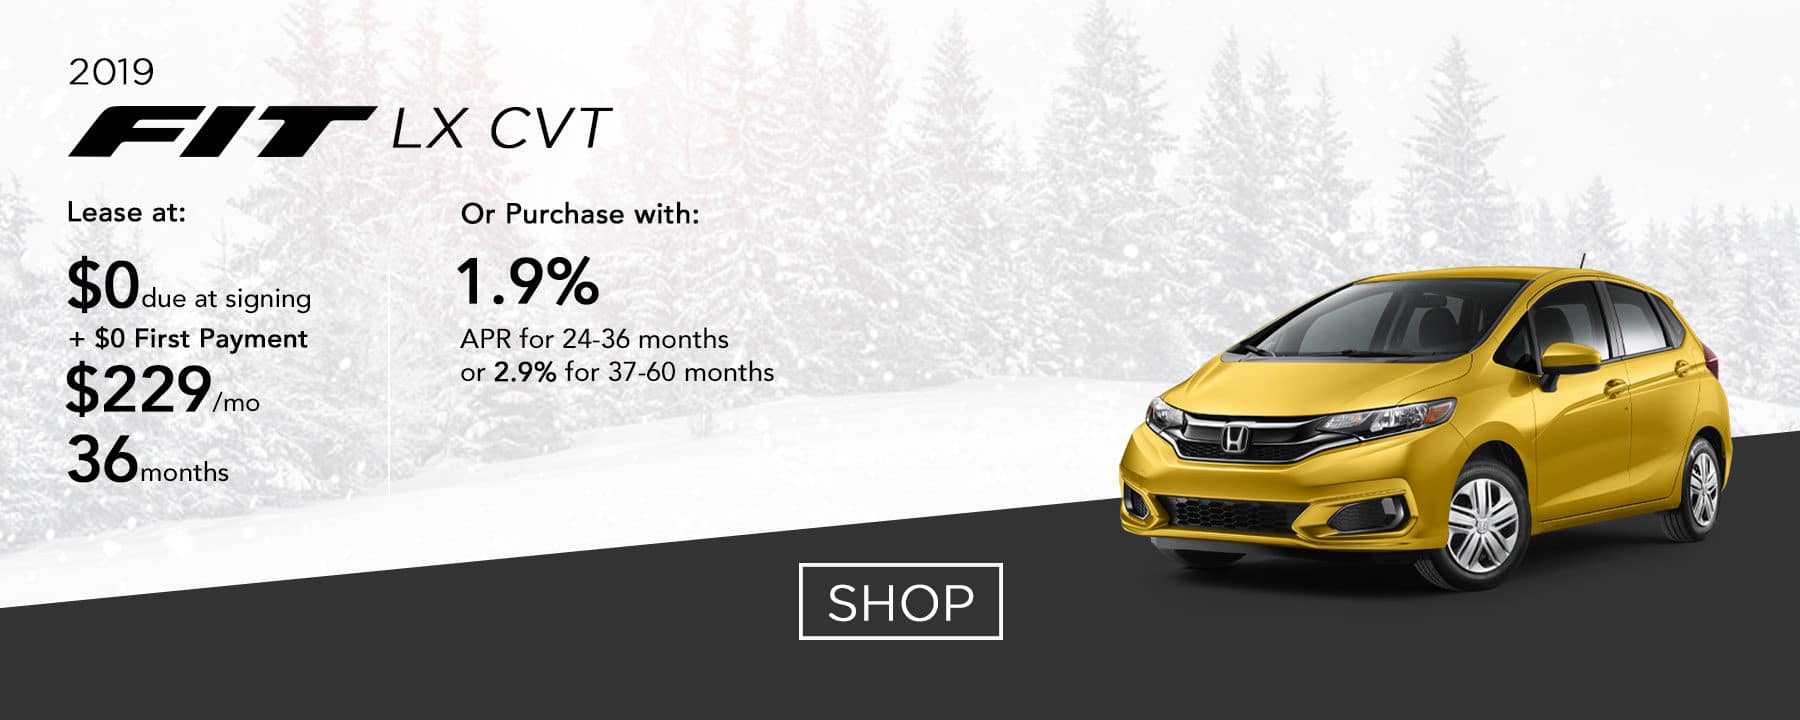 Lease a 2019 Fit LX CVT for $229 per month or purchase with 1.9% APR up to 36 months